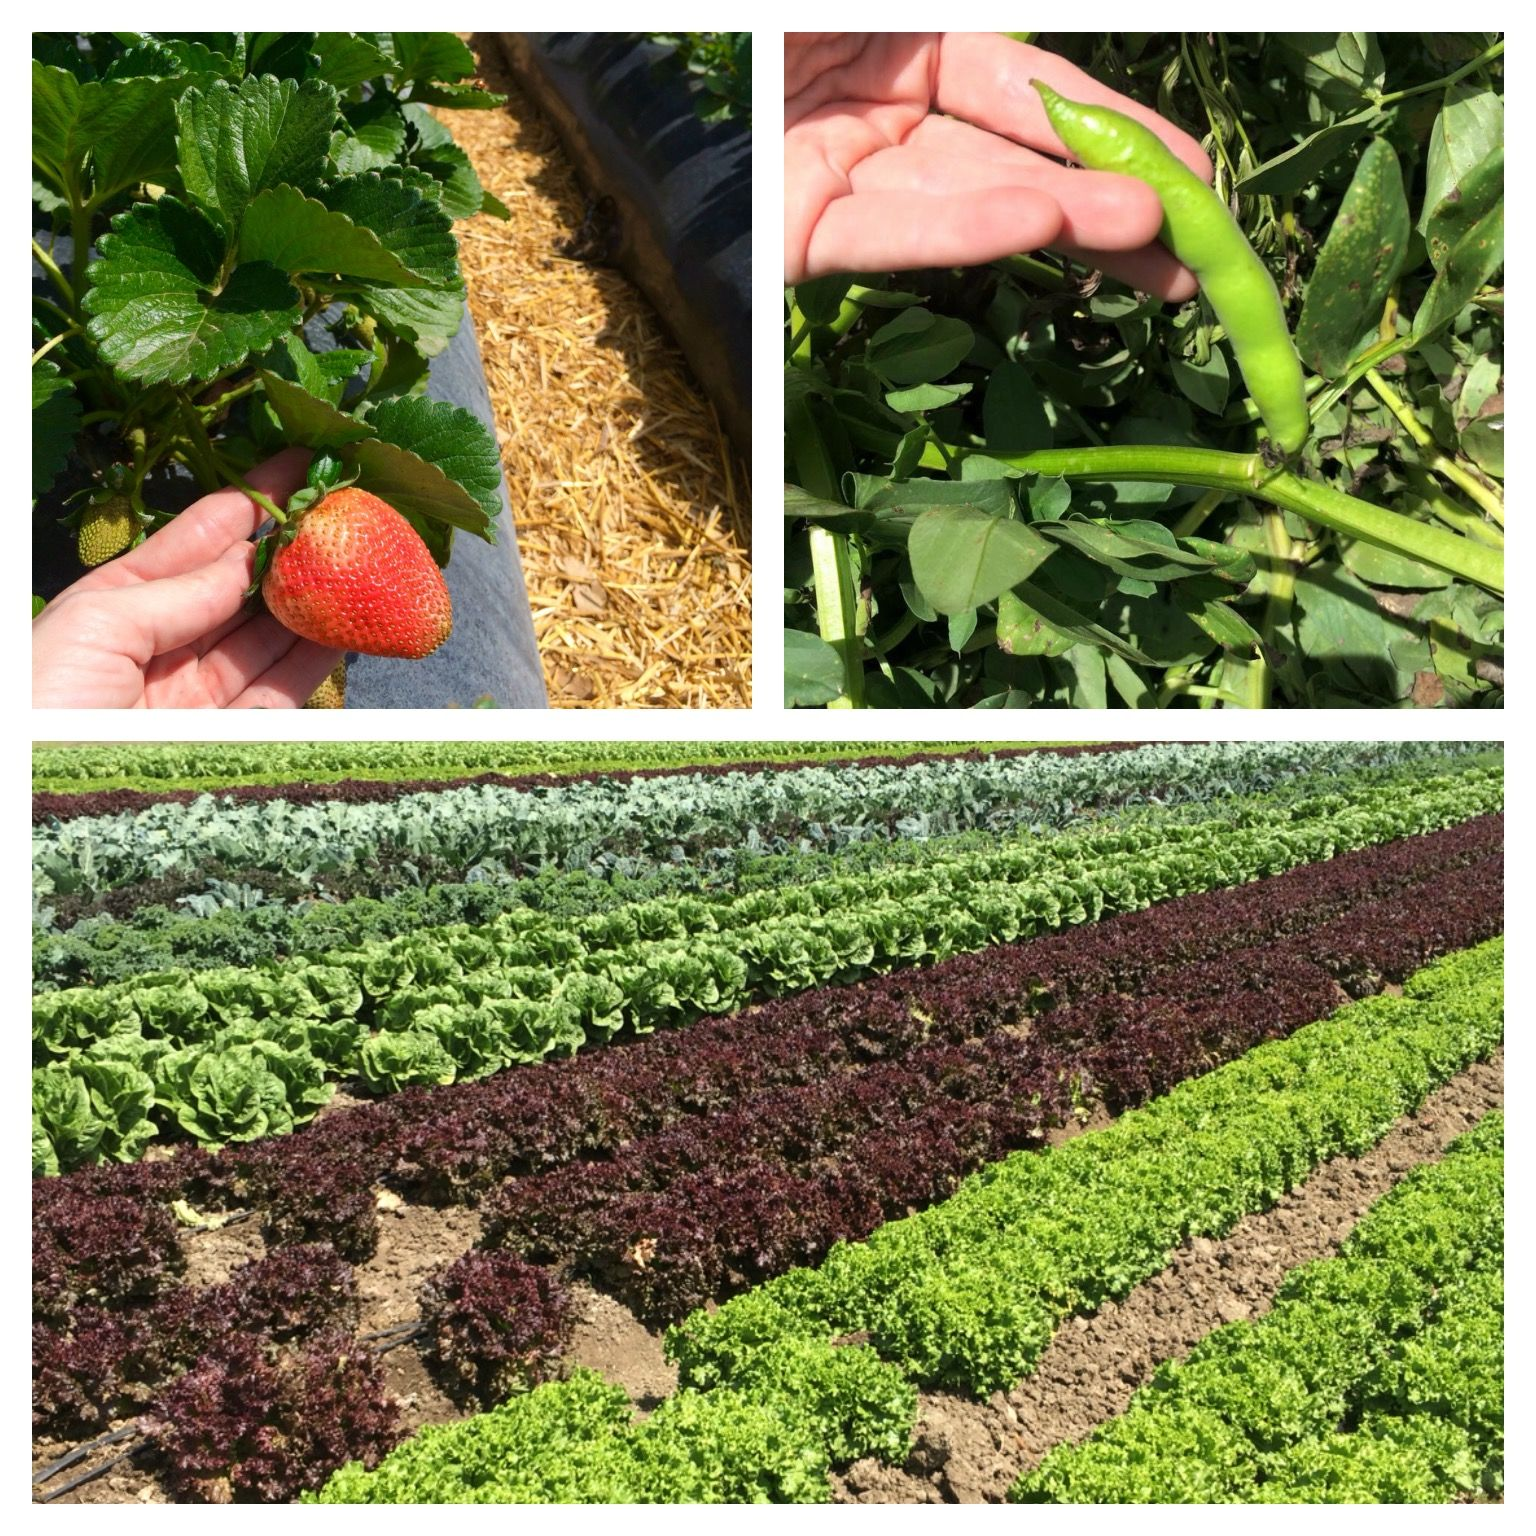 Strawberries, Fava Beans and Lettuce at Underwood Farms (photo by Nikki kreuzer_